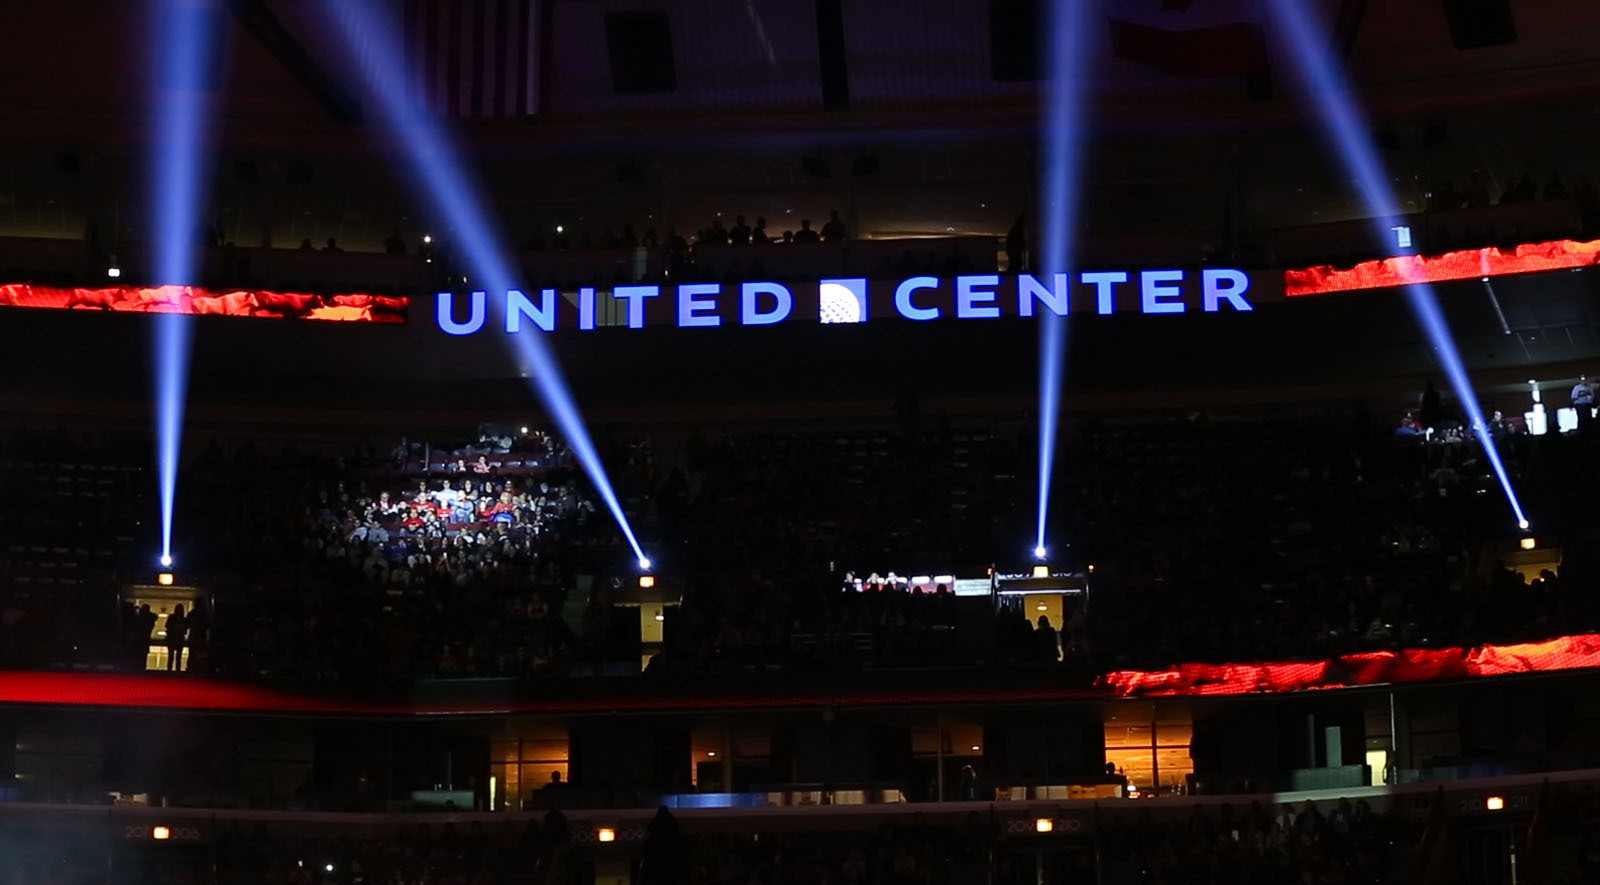 Ct-united-center-nba-all-star-game-spt-0722-20160721